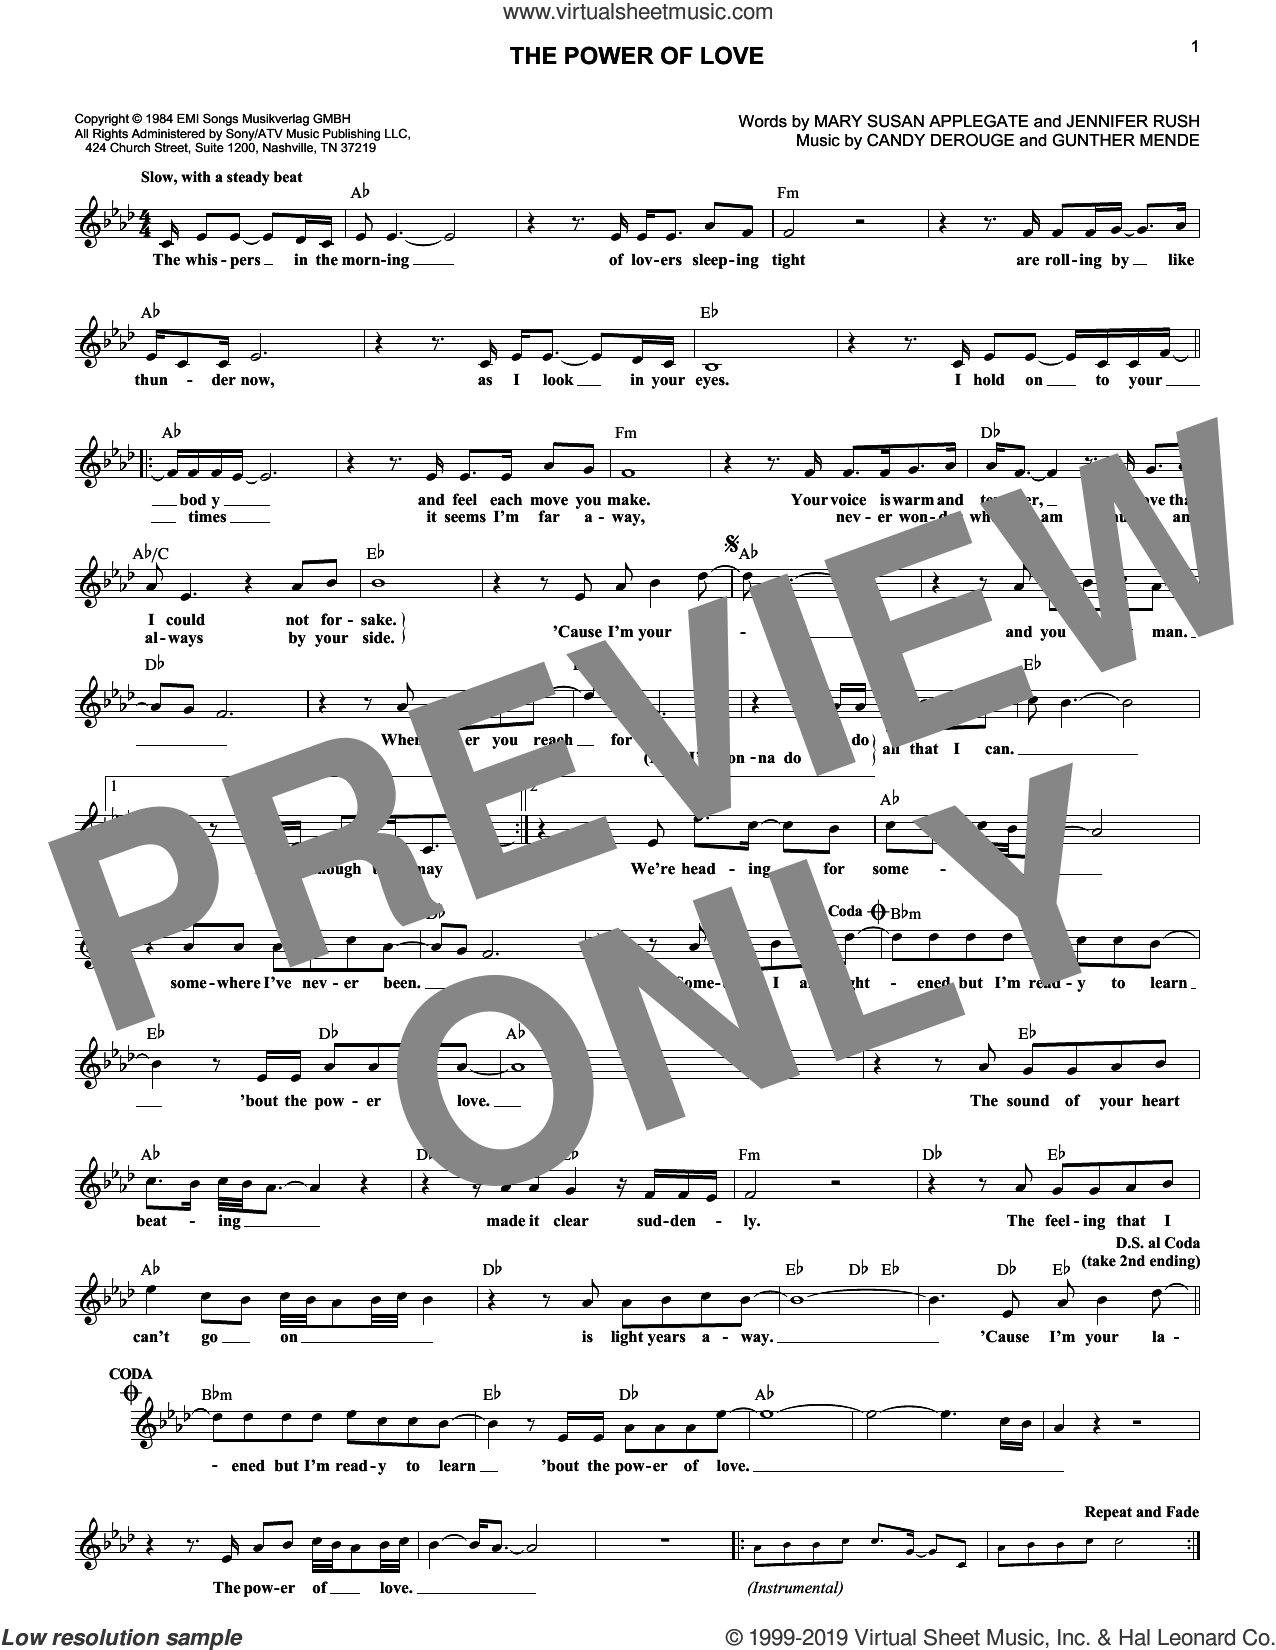 The Power Of Love sheet music for voice and other instruments (fake book) by Air Supply, Candy Derouge, Gunther Mende, Jennifer Rush and Mary Susan Applegate, intermediate skill level